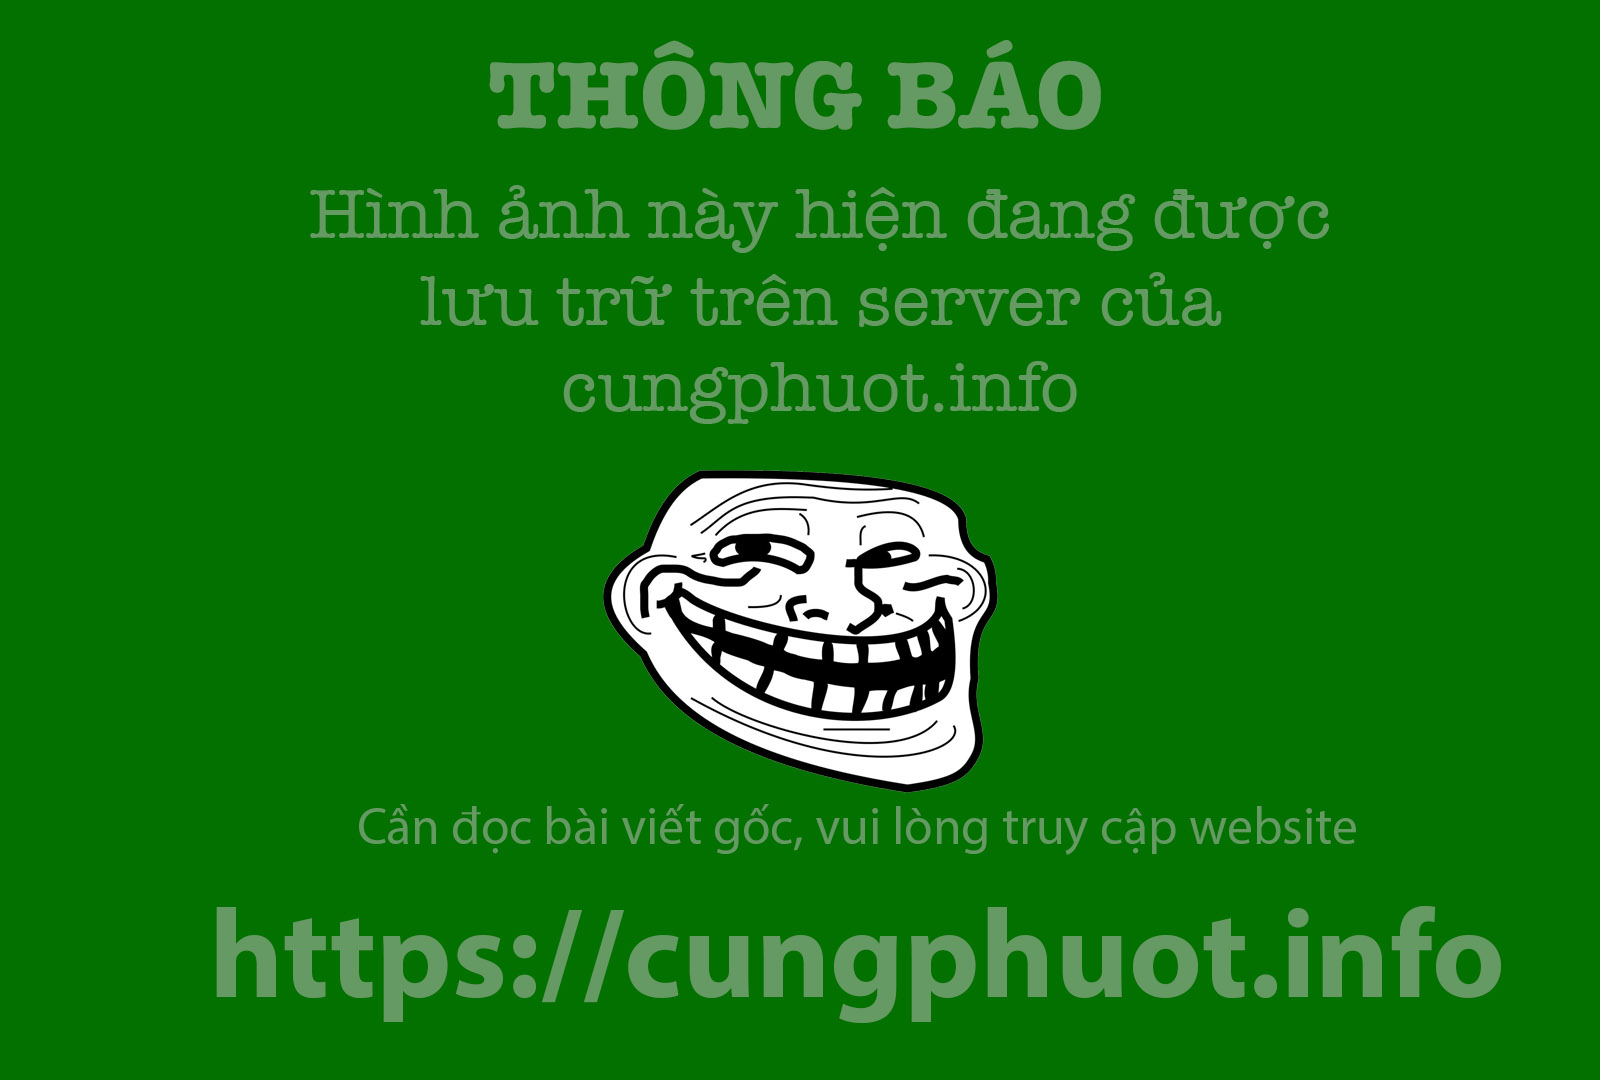 May von nui tren cong troi Muong Long hinh anh 9